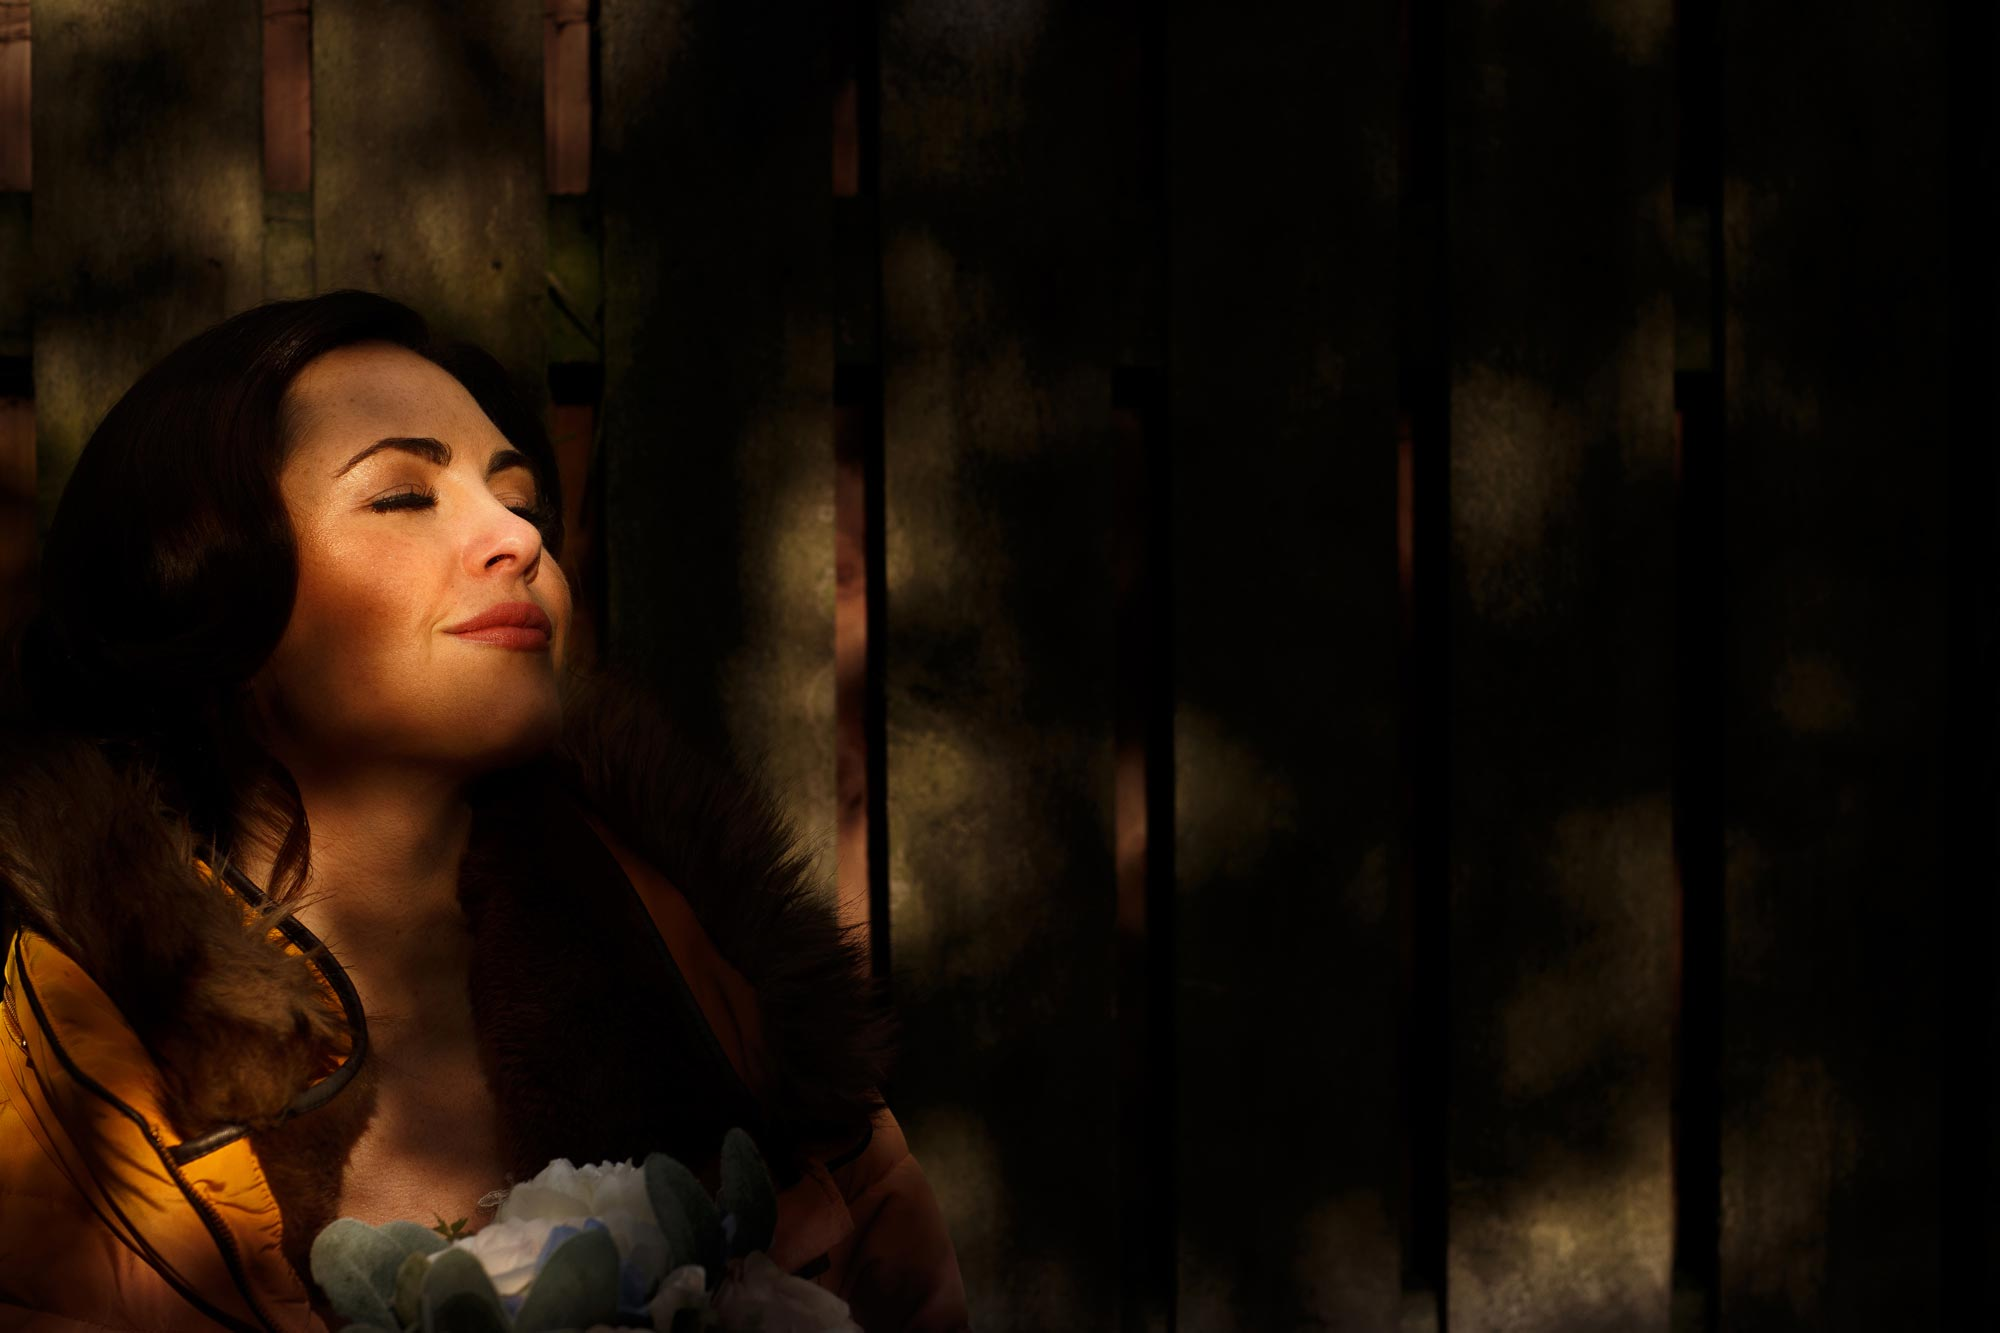 Wedding photograph of bride taken using selective choice of dappled sunlight.